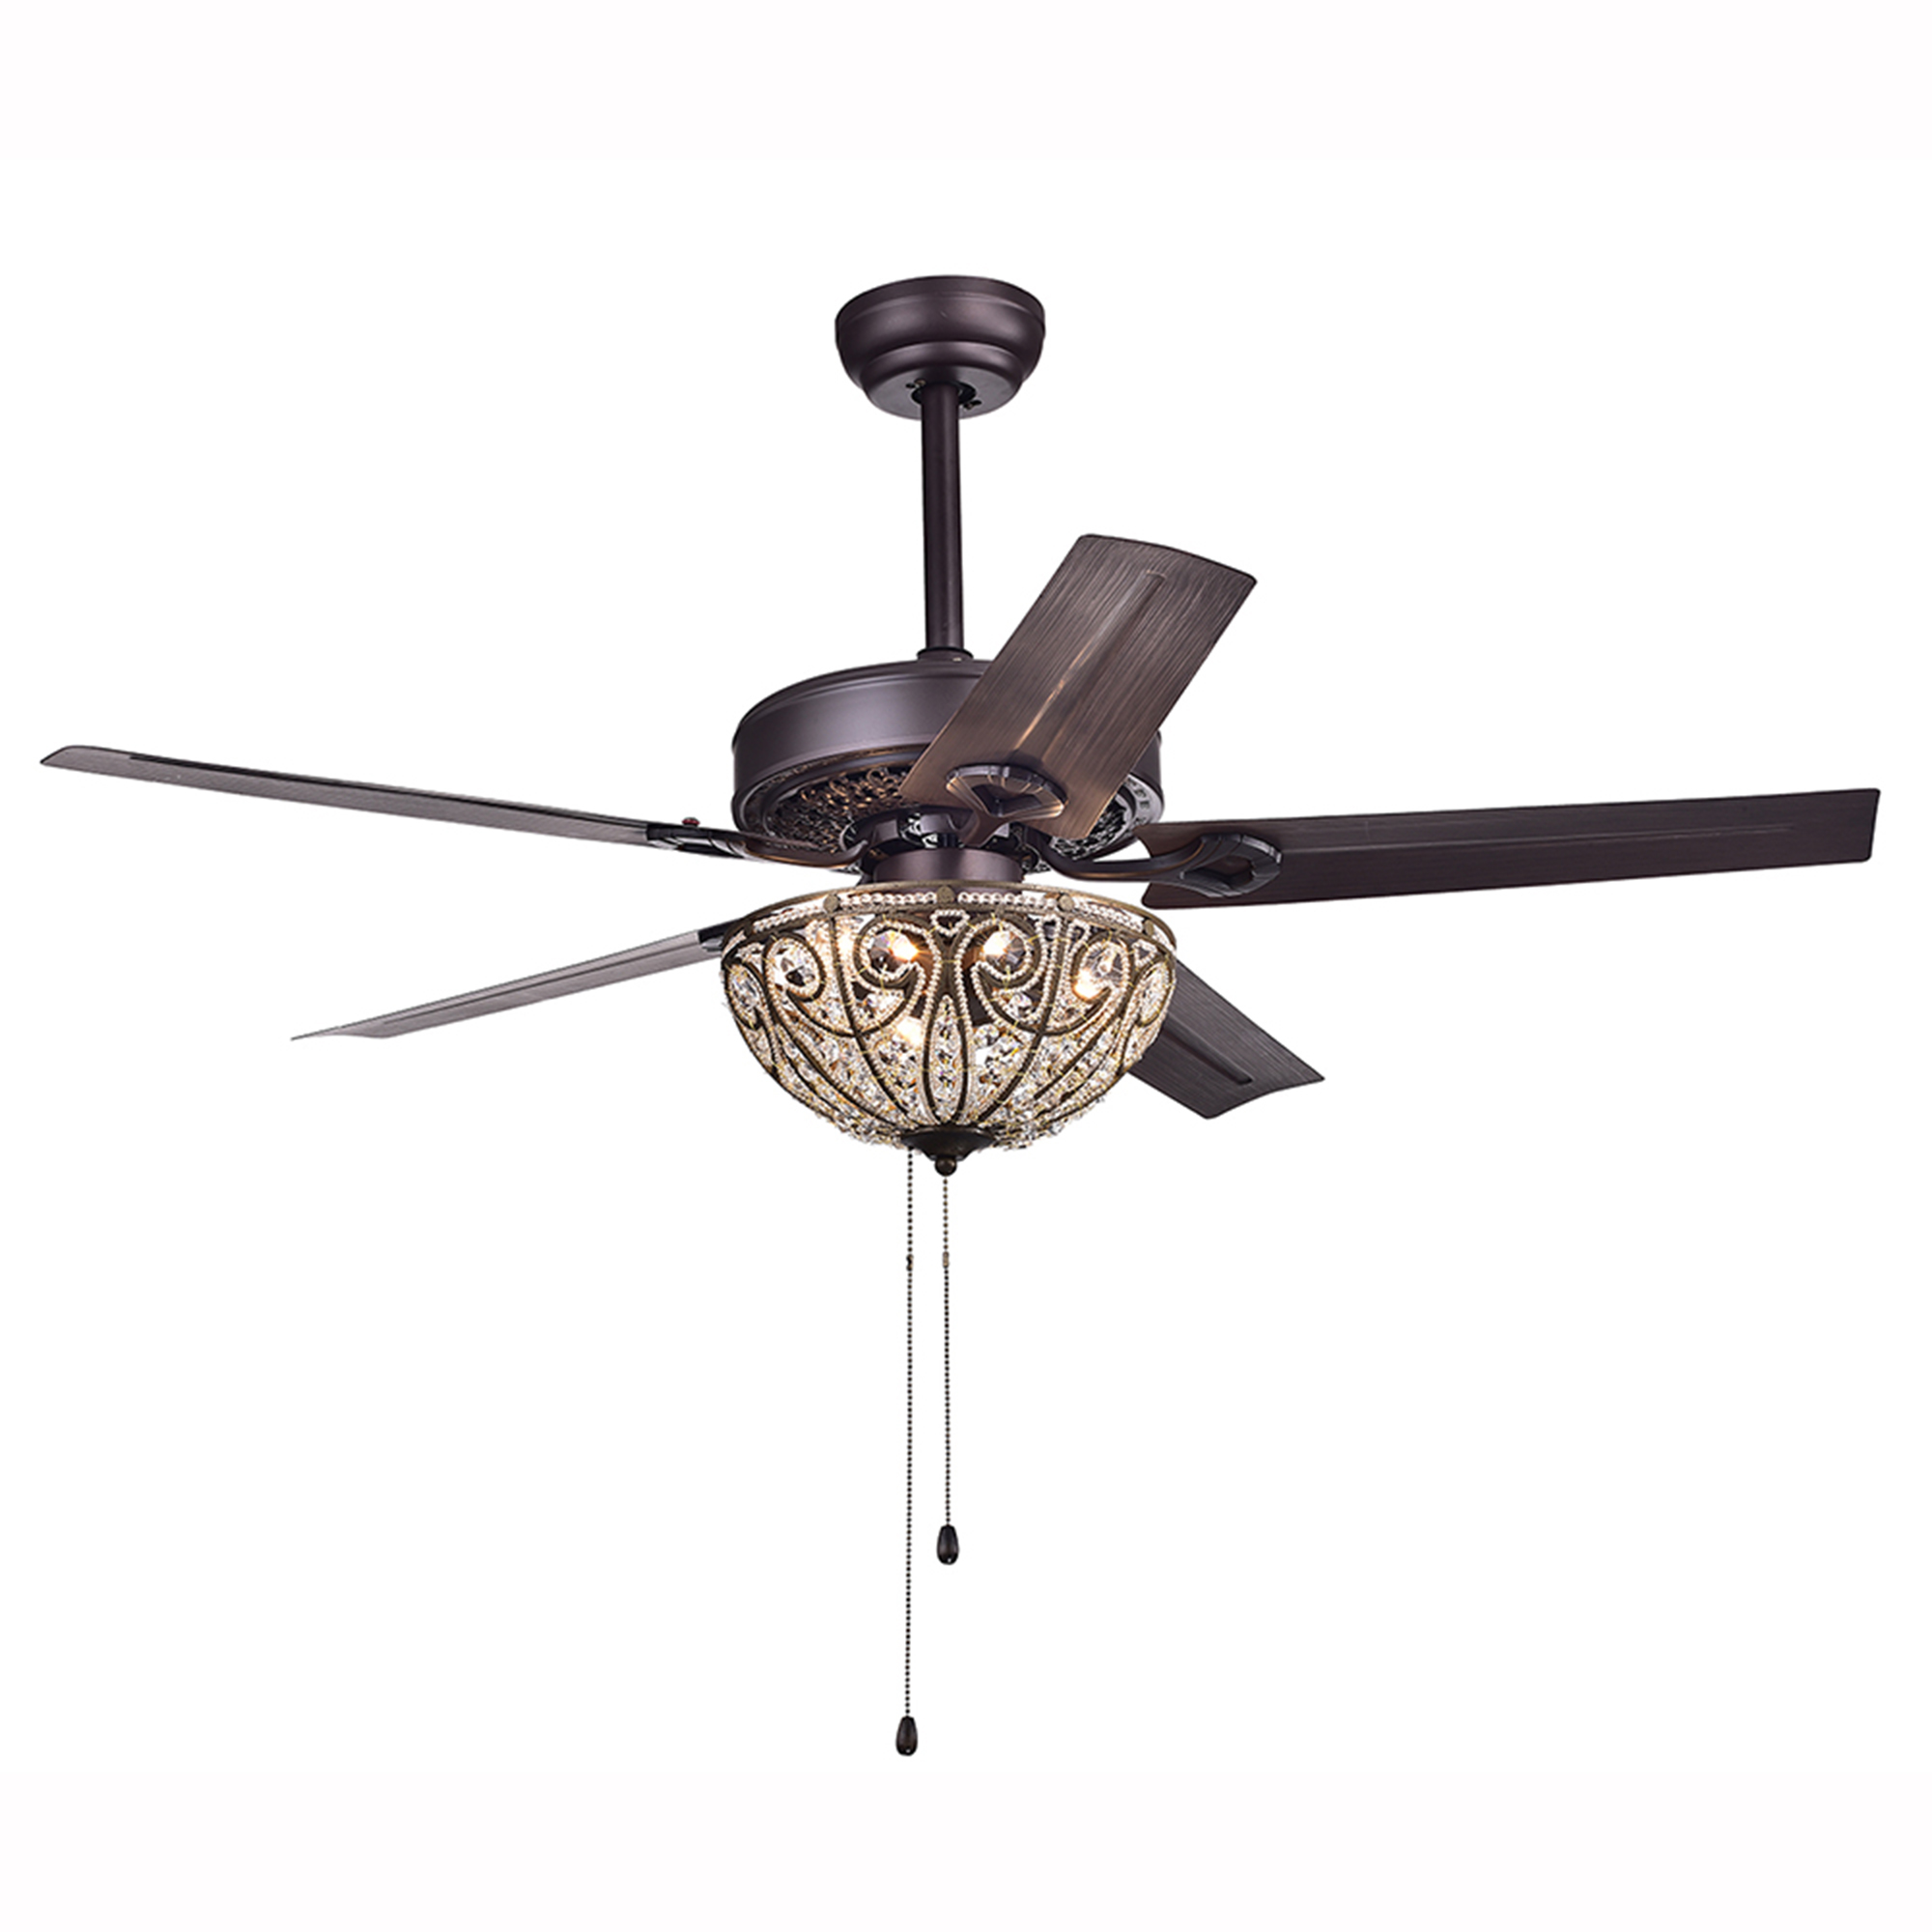 48 inch ceiling fan 52 inch catalina bronzefinished 5blade 48inch crystal ceiling fan optional